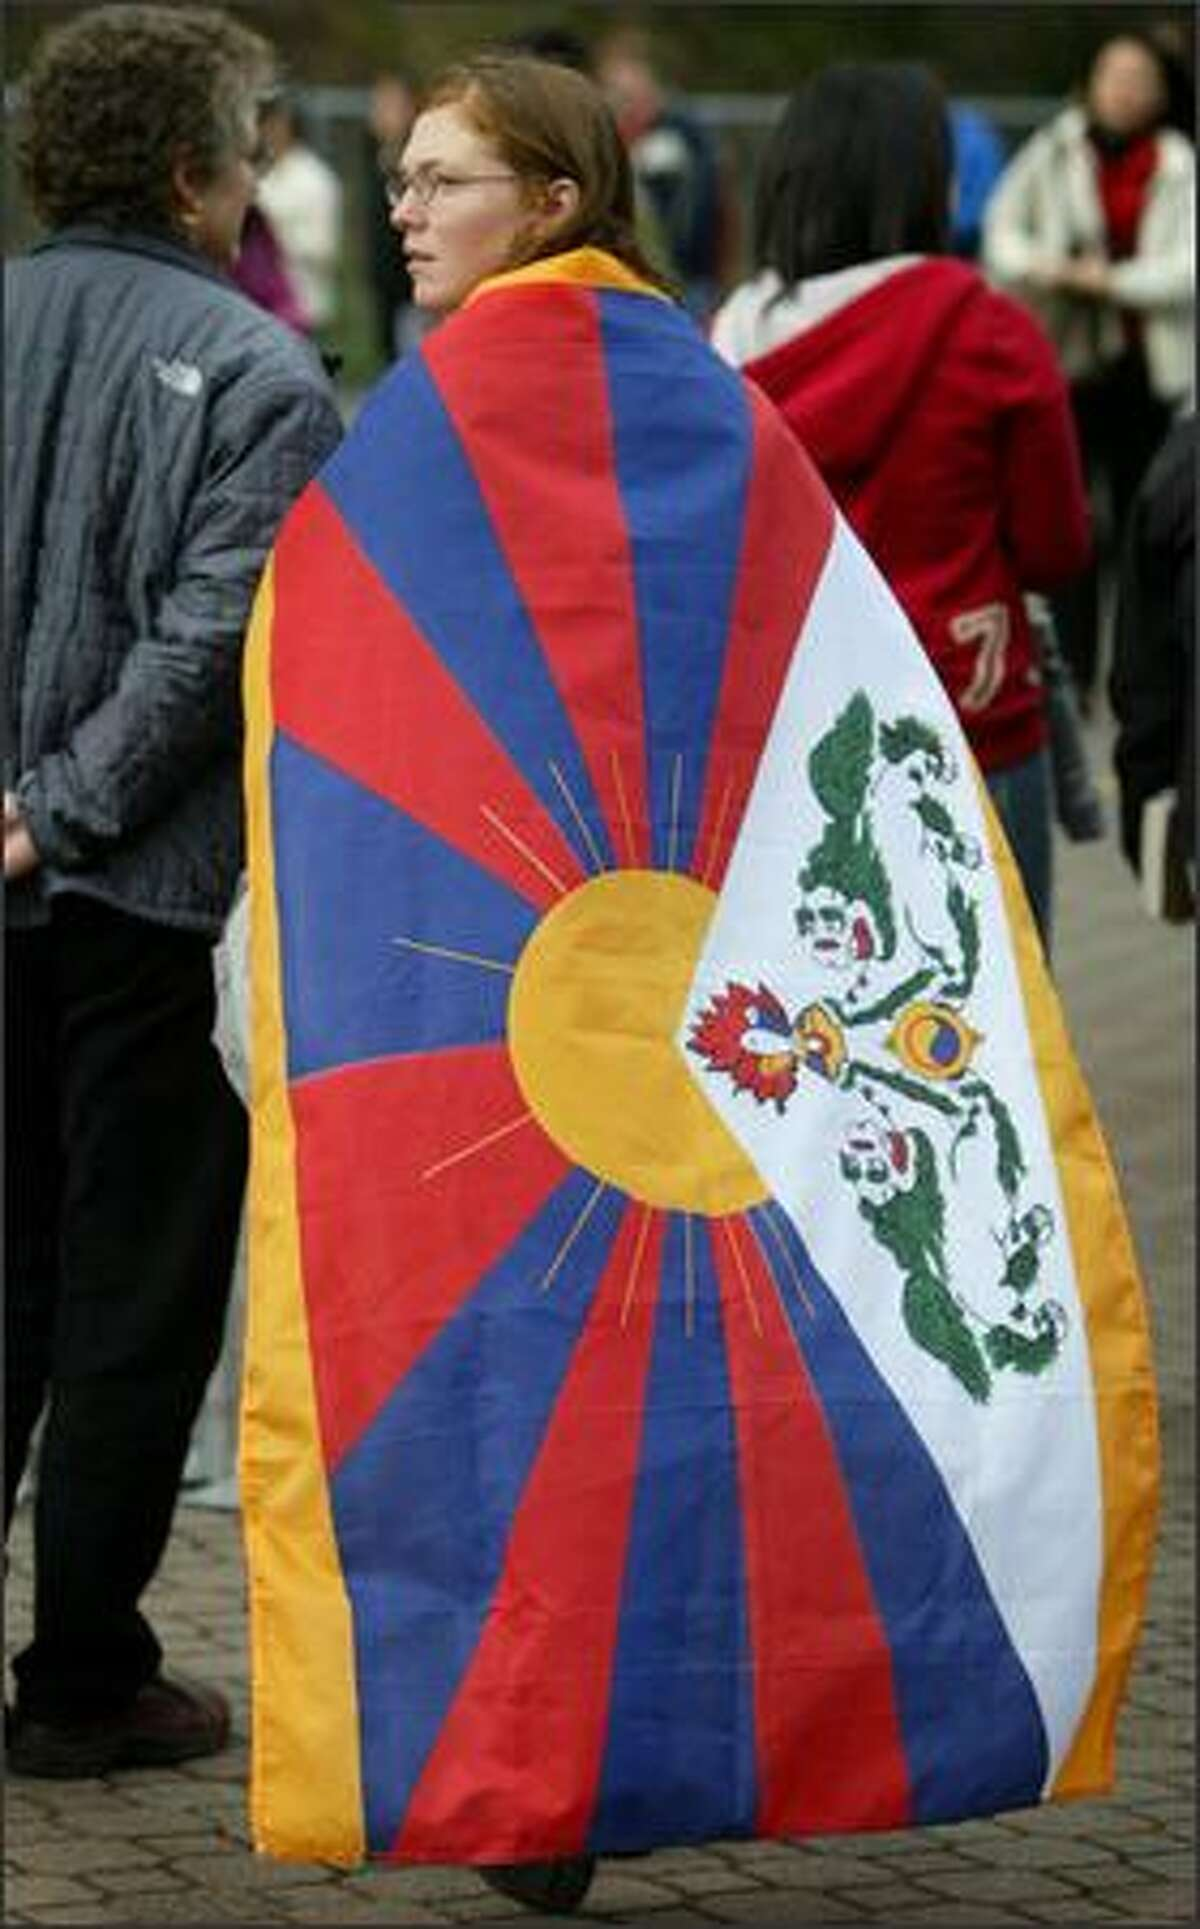 Seattleite Maggie Murdoch, wearing a Tibetan flag, looks back at pro-Chinese government protestors as they show their disapproval of the Dalai Lama before the religious leader was to receive an honorary degree at the University of Washington. Murdoch said she was surprised to see the protestors against the Dalai Lama.